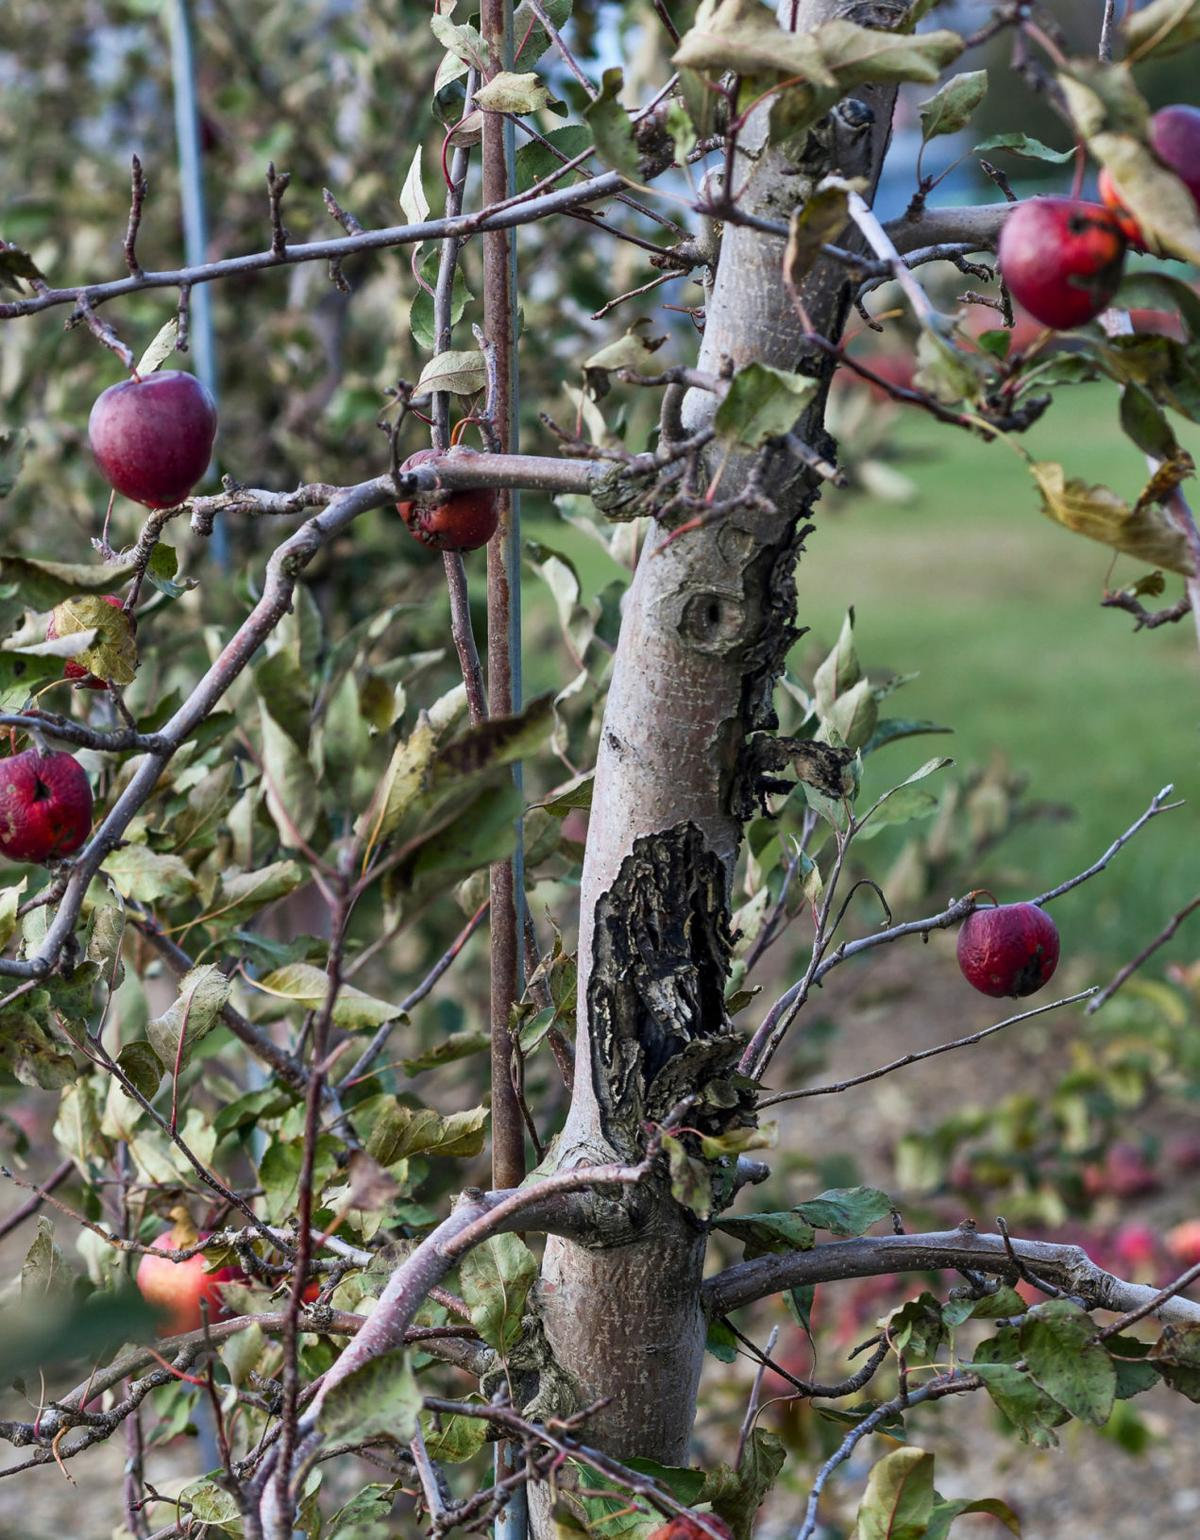 Fire blight spreads north, threatening orchards